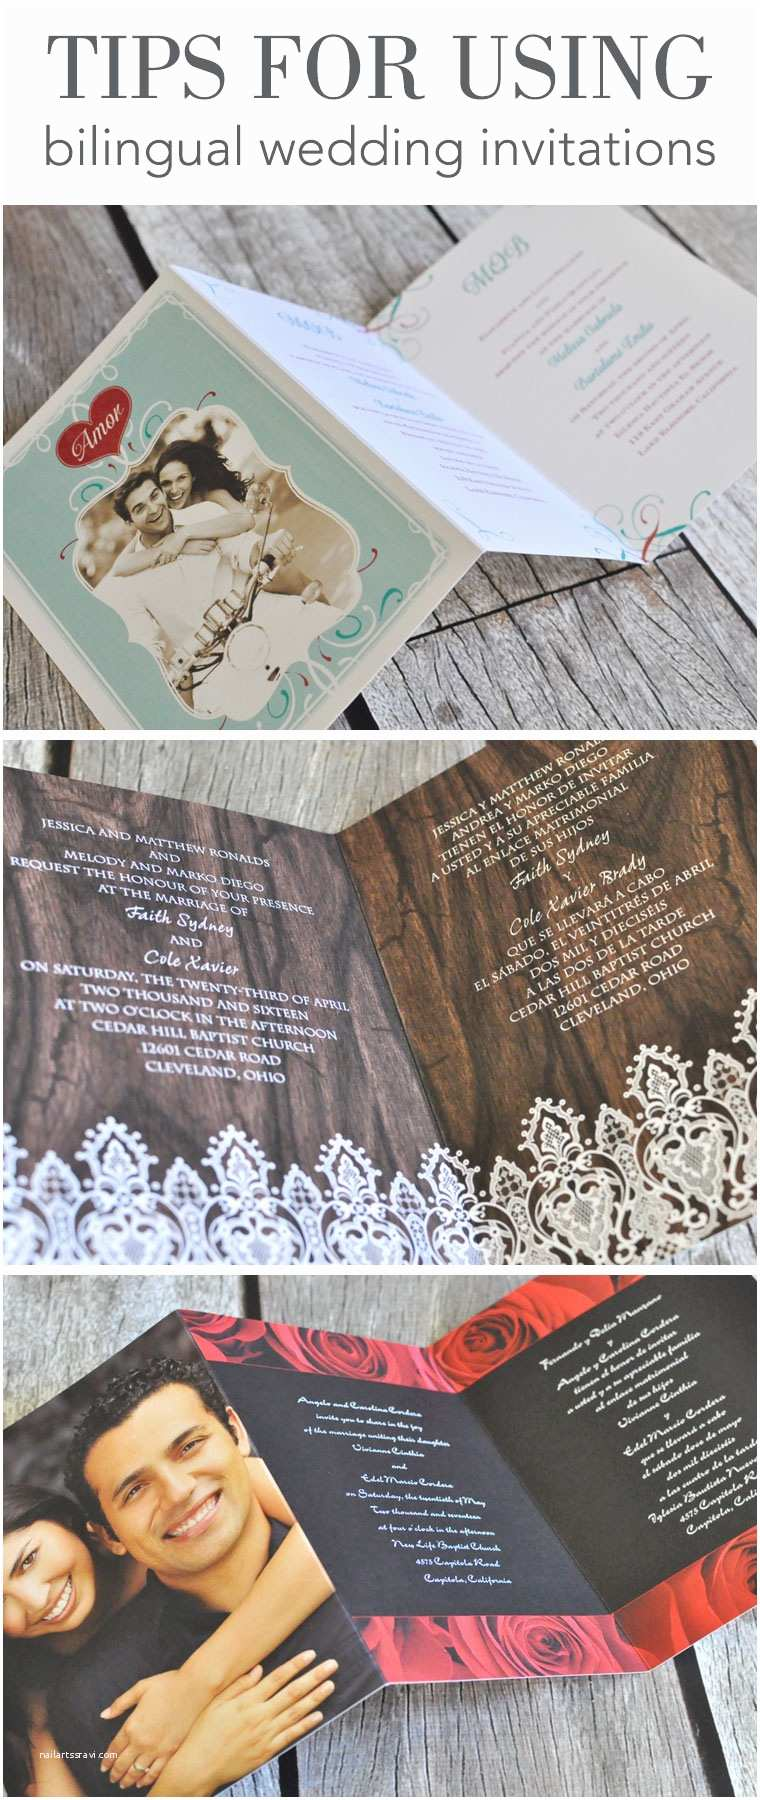 Bilingual Wedding Invitations Bilingual Invitations